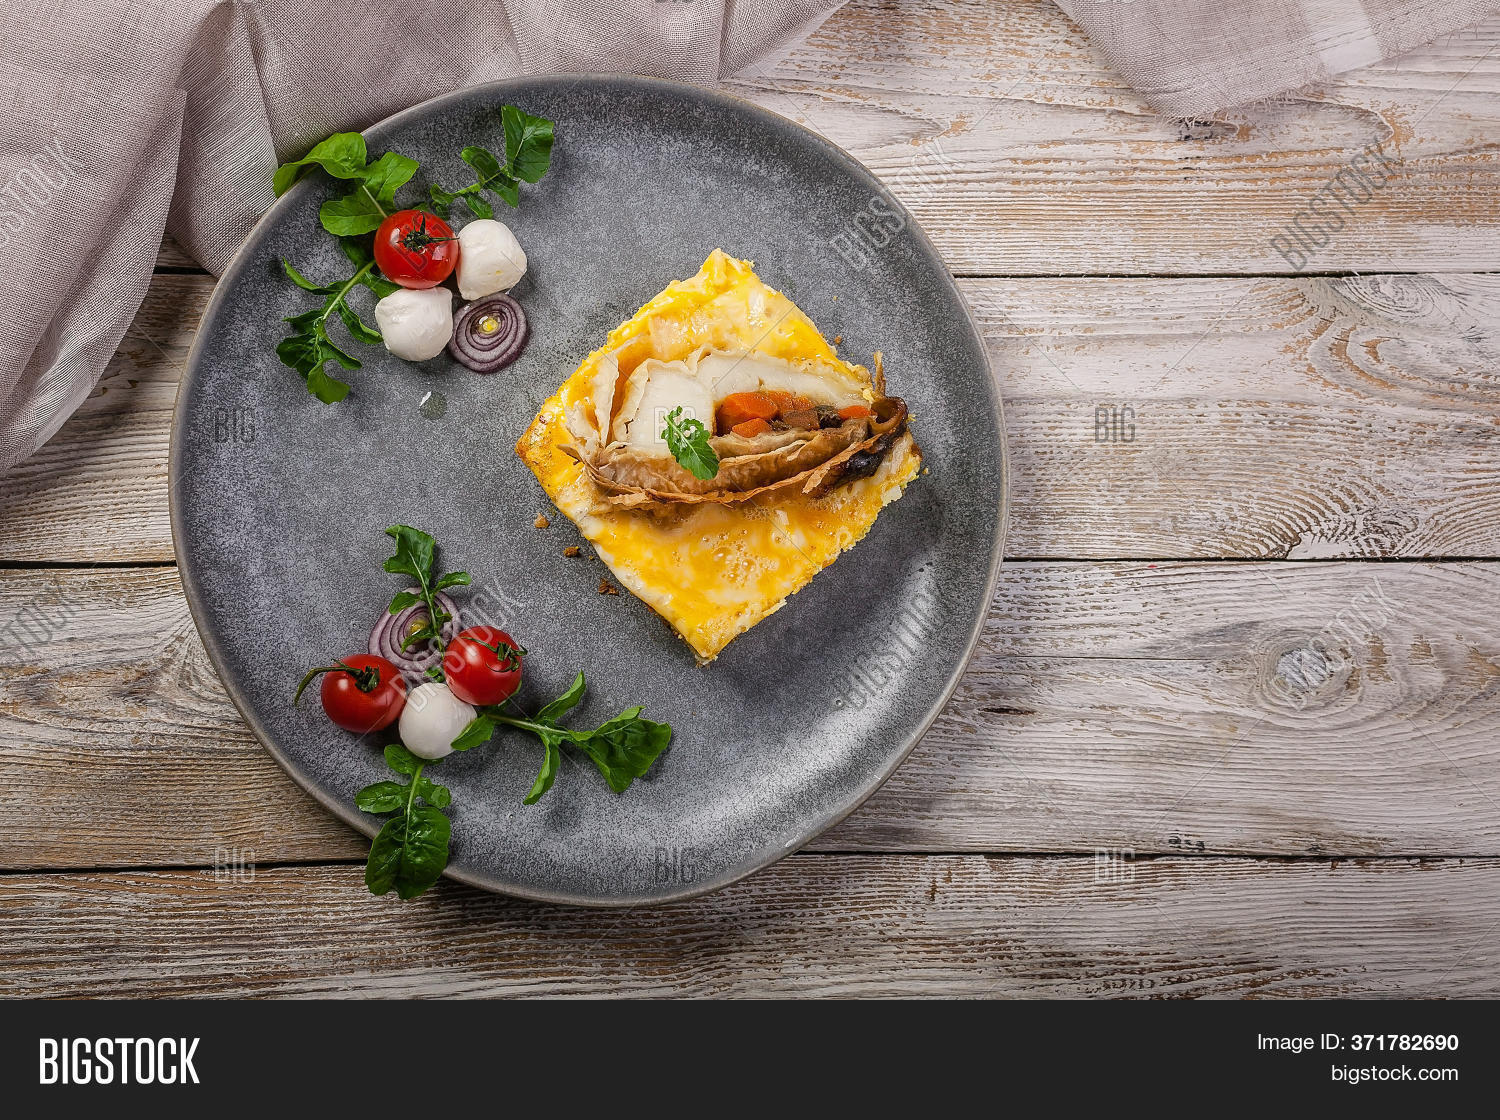 Top View Omelet Fish Image Photo Free Trial Bigstock